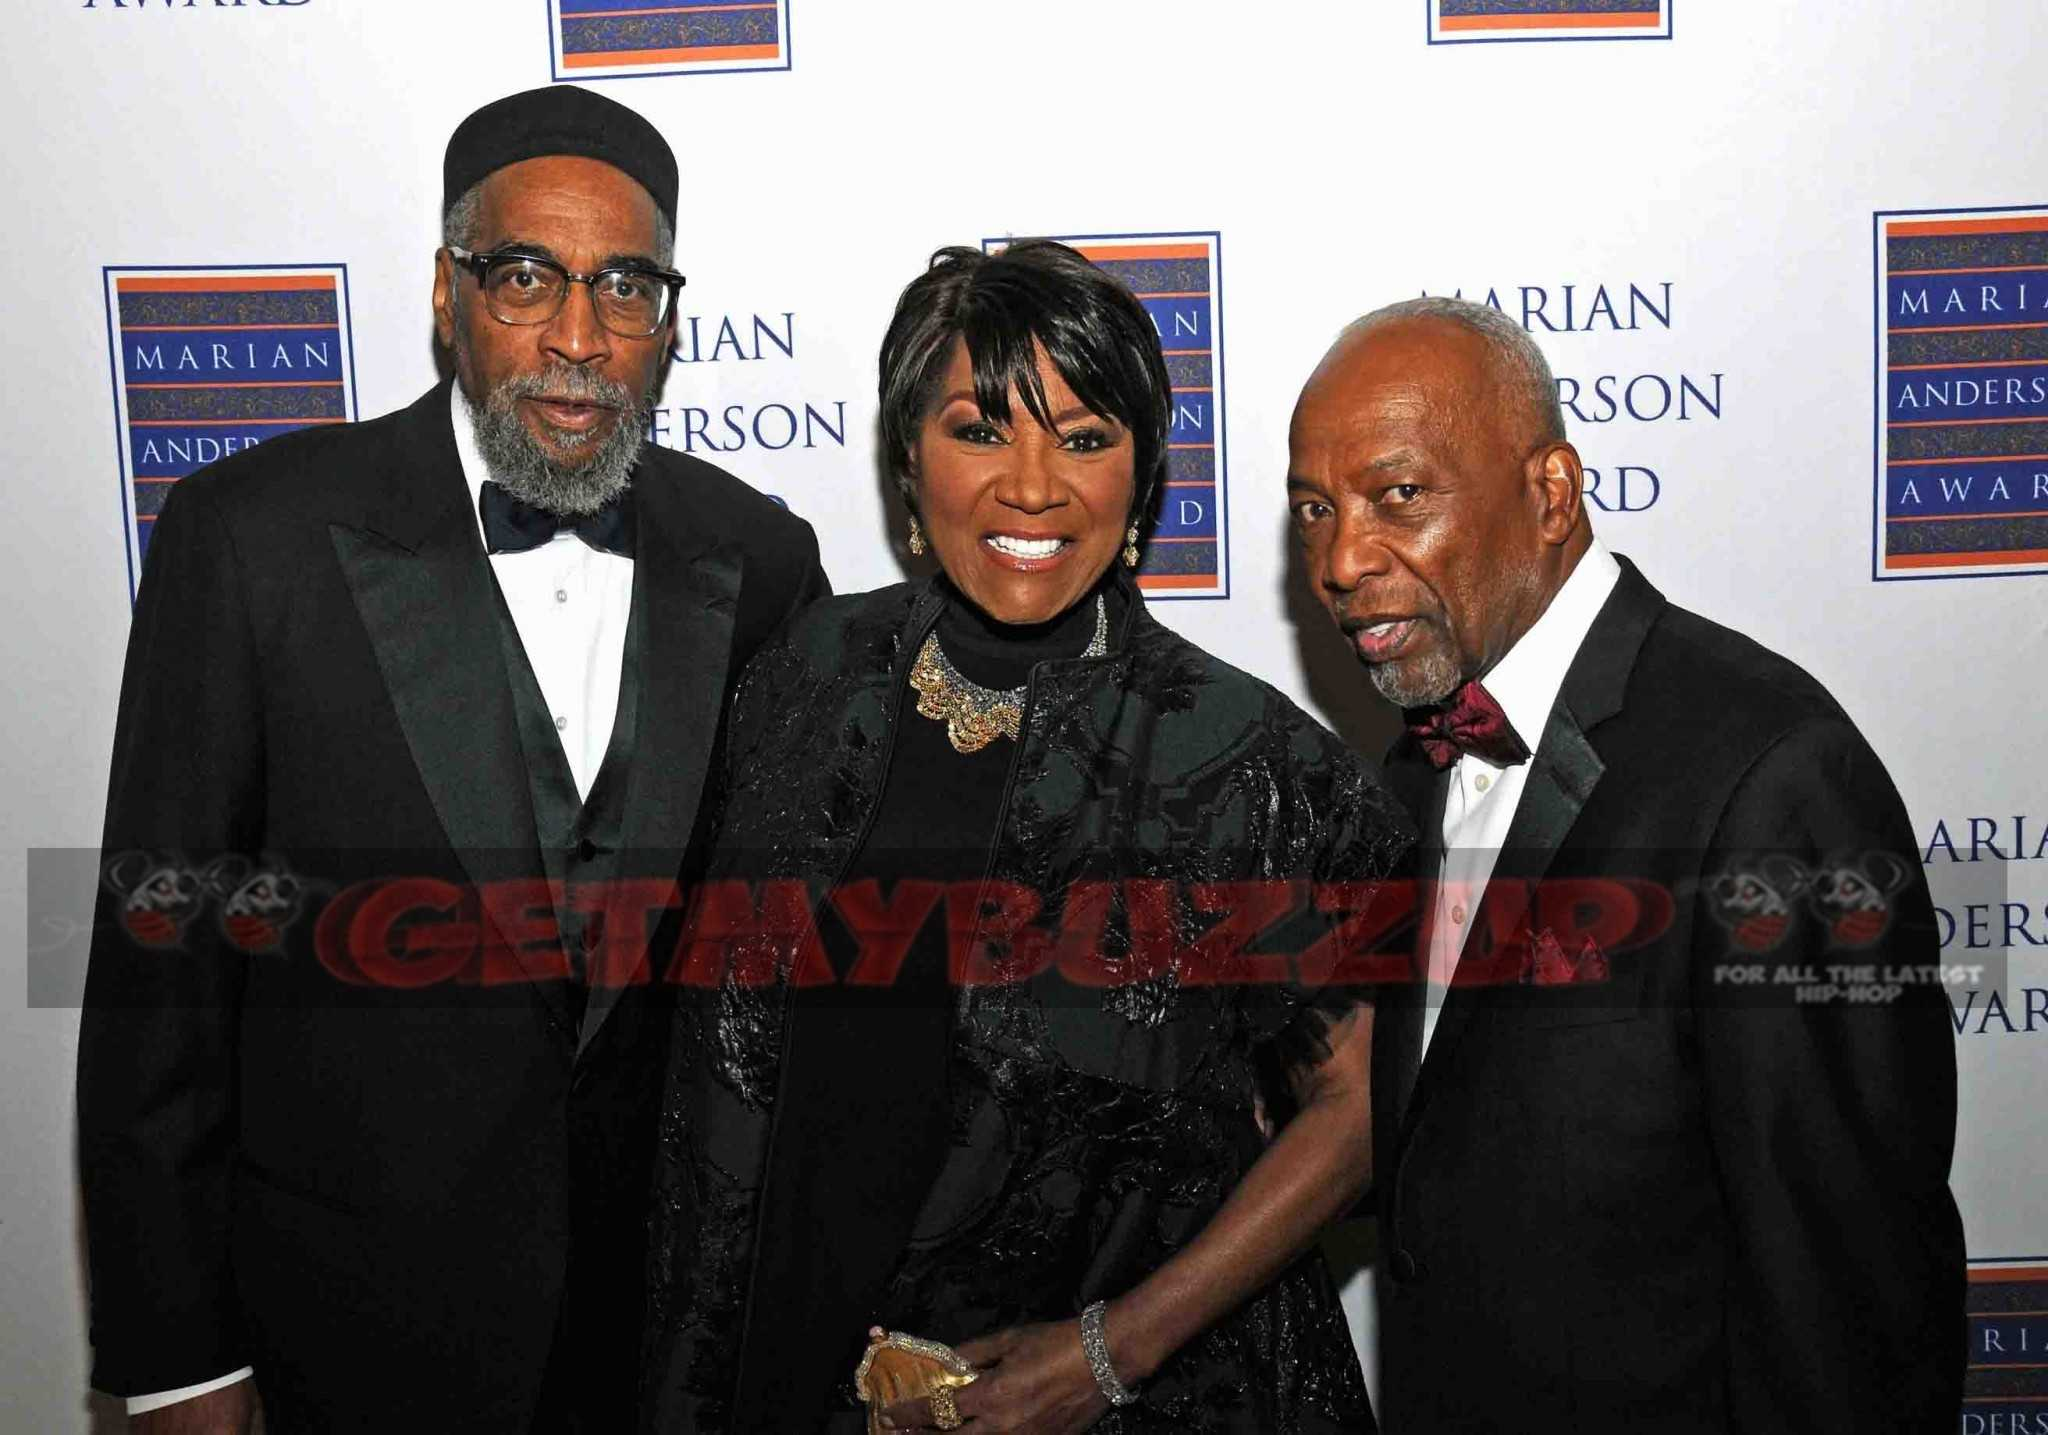 GAMBLE & HUFF Receive Star-Studded Salute with Patti LaBelle at 2016 Marian Anderson Awards [Photos]